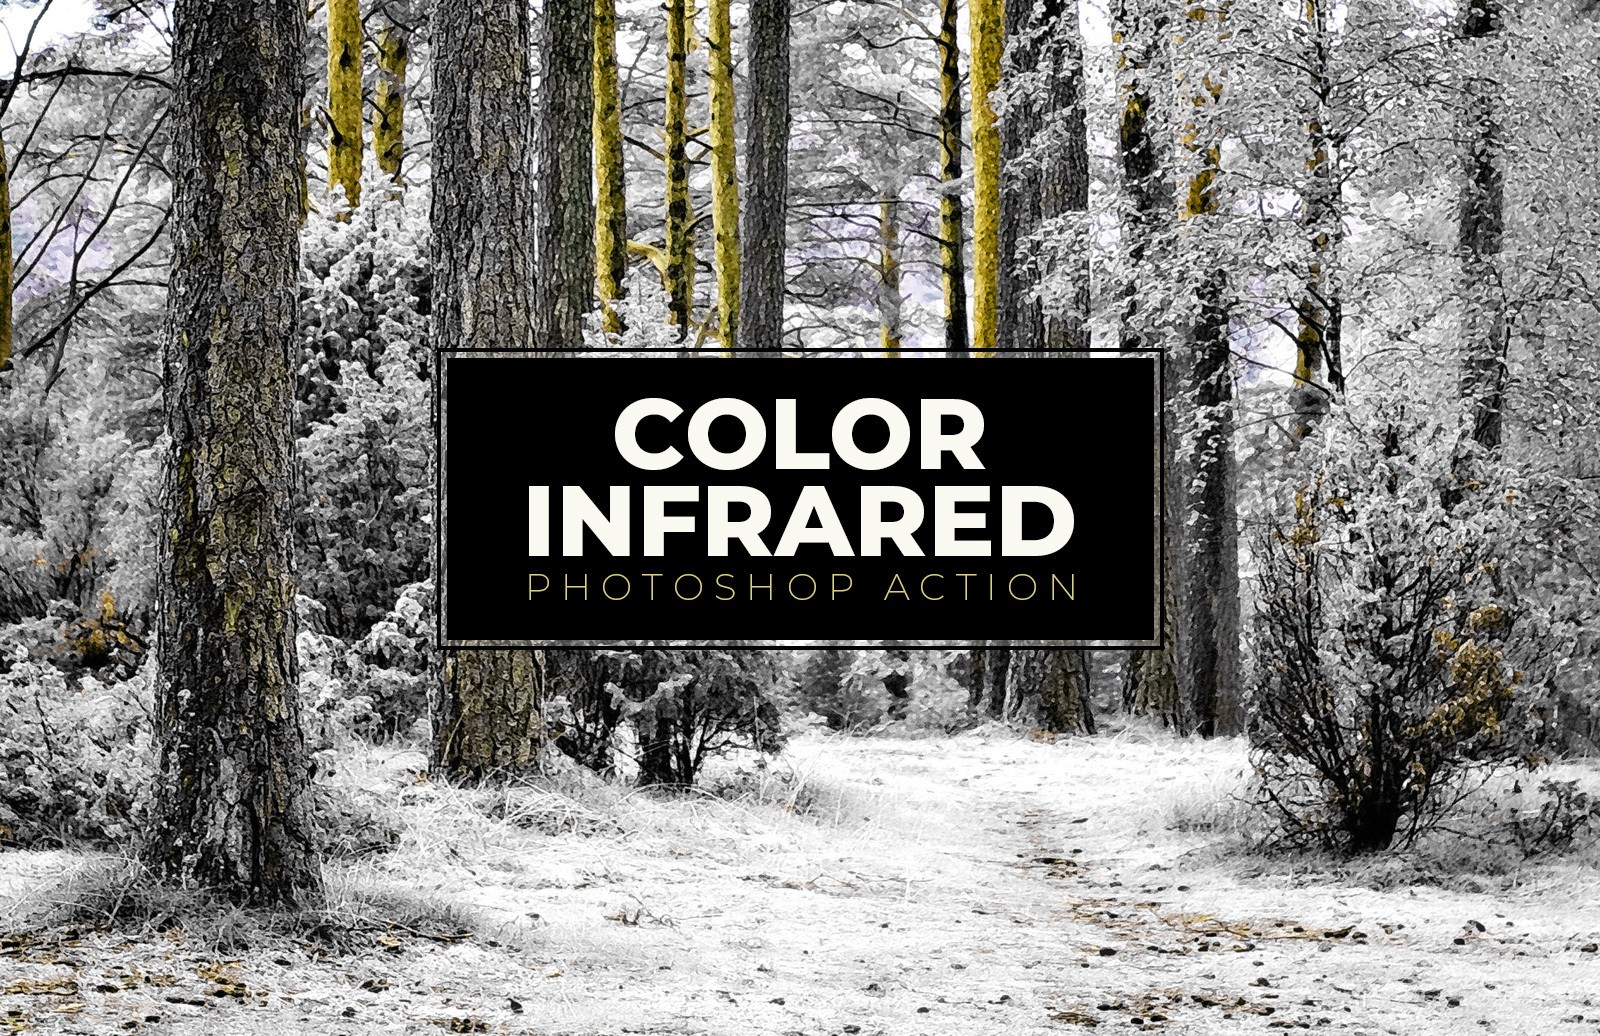 Color Infrared Photoshop Action